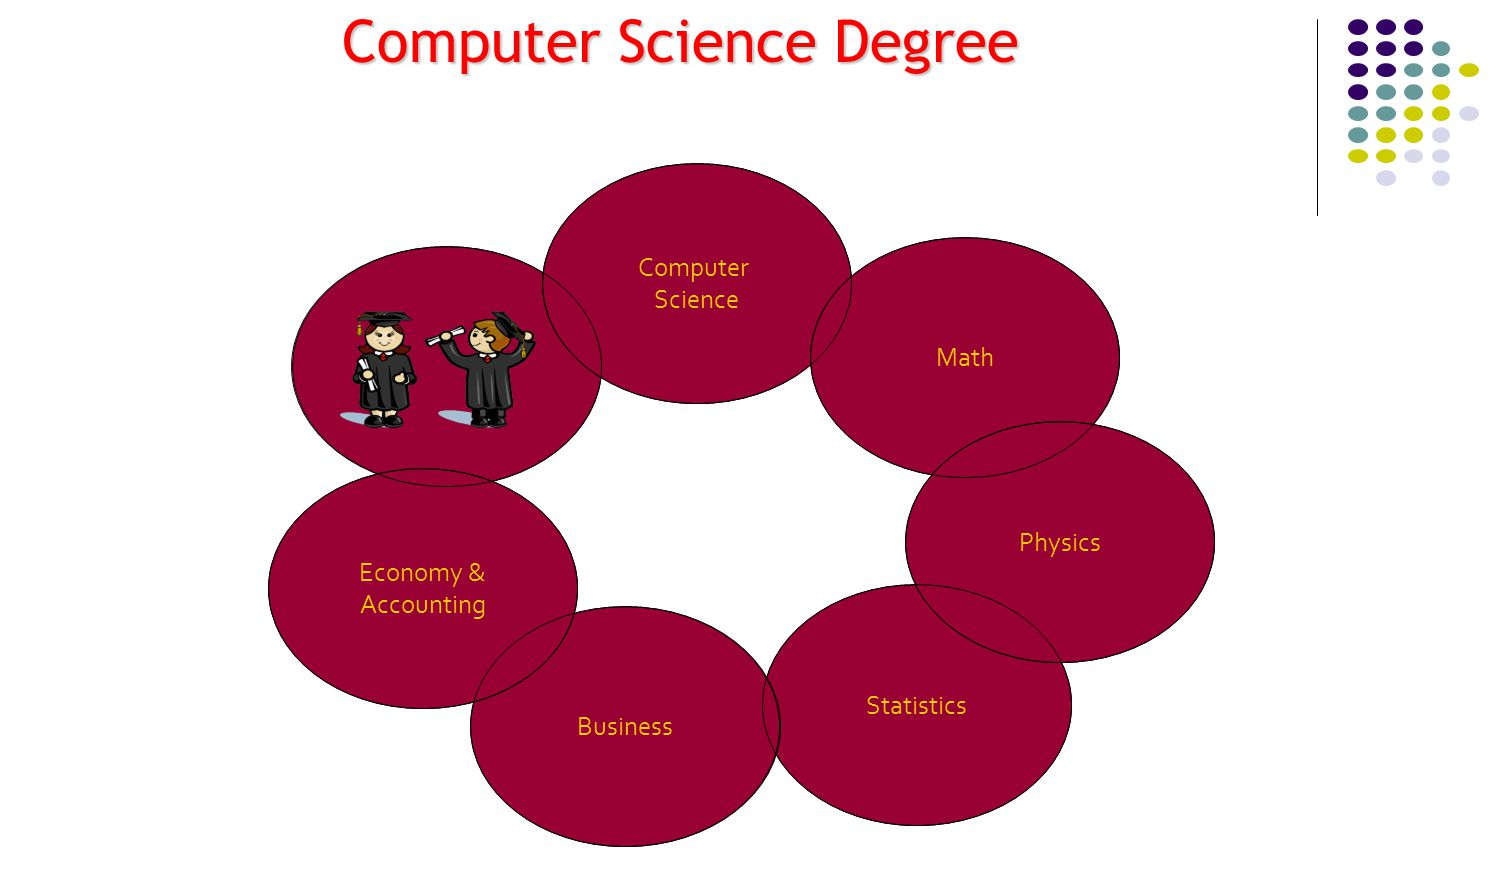 Computer Science Math Statistics Business Physics Economy & Accounting Computer Science Degree